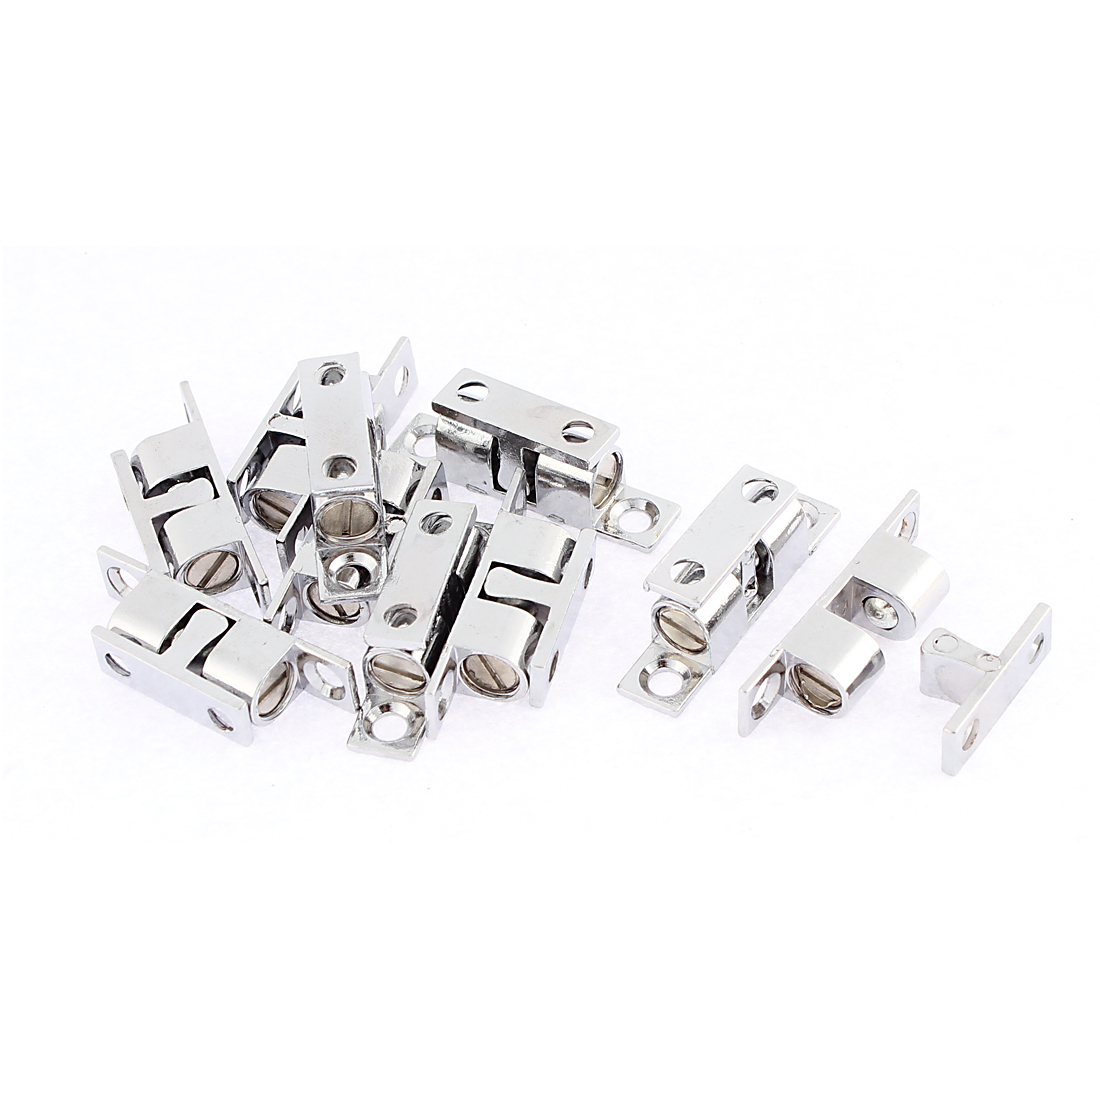 Hardware Cabinet Door Cupboard Magnetic Catches Silver Tone 40 x 10 x 13mm 10Pcs